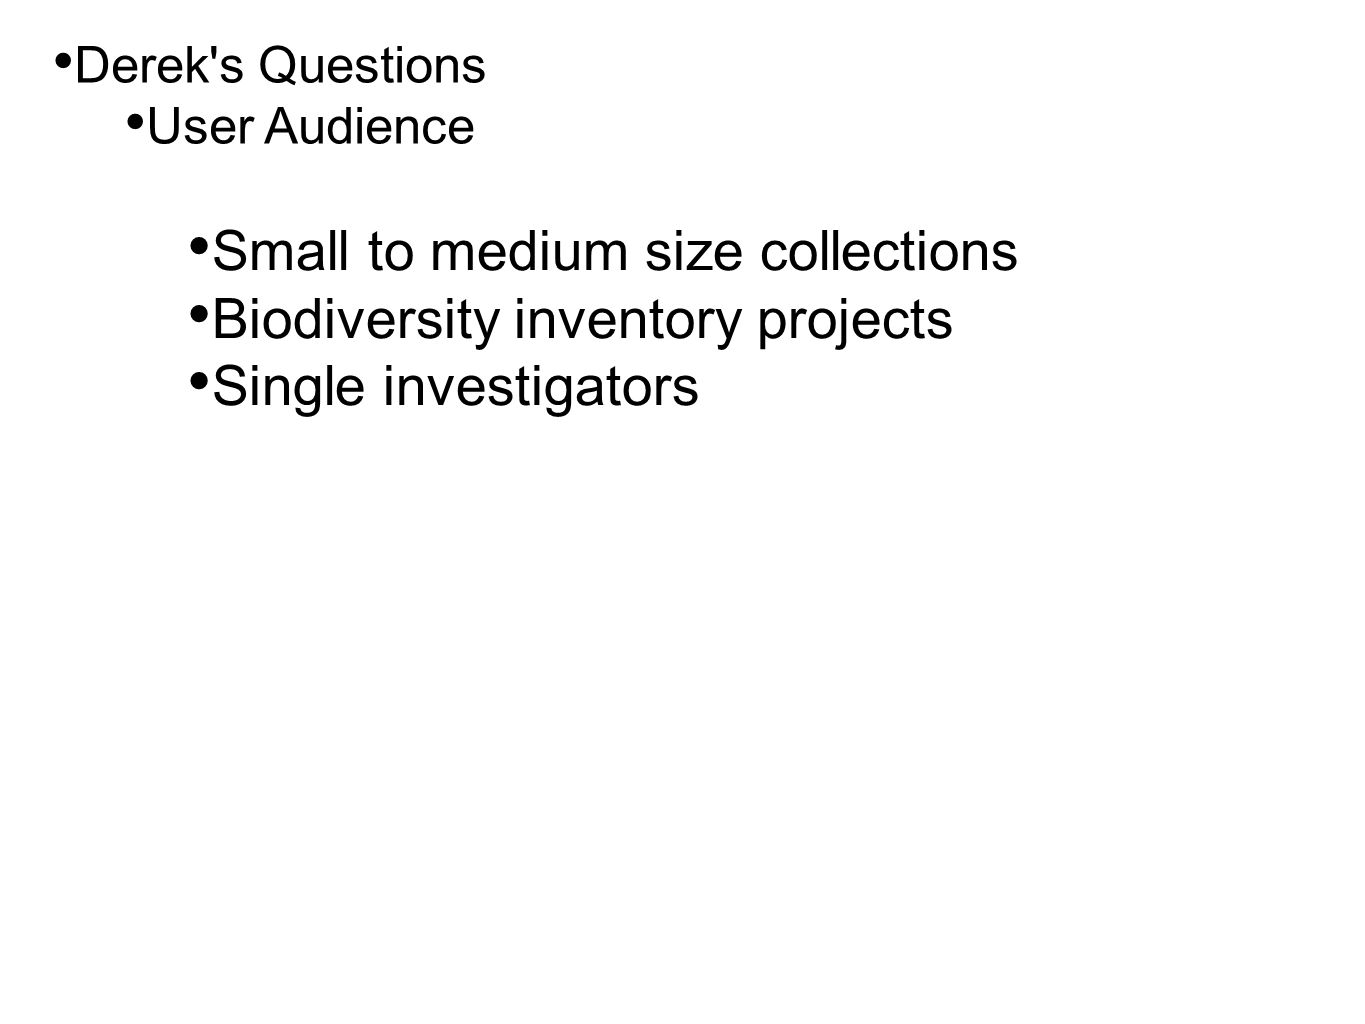 • Derek's Questions • User Audience • Small to medium size collections • Biodiversity inventory projects • Single investigators